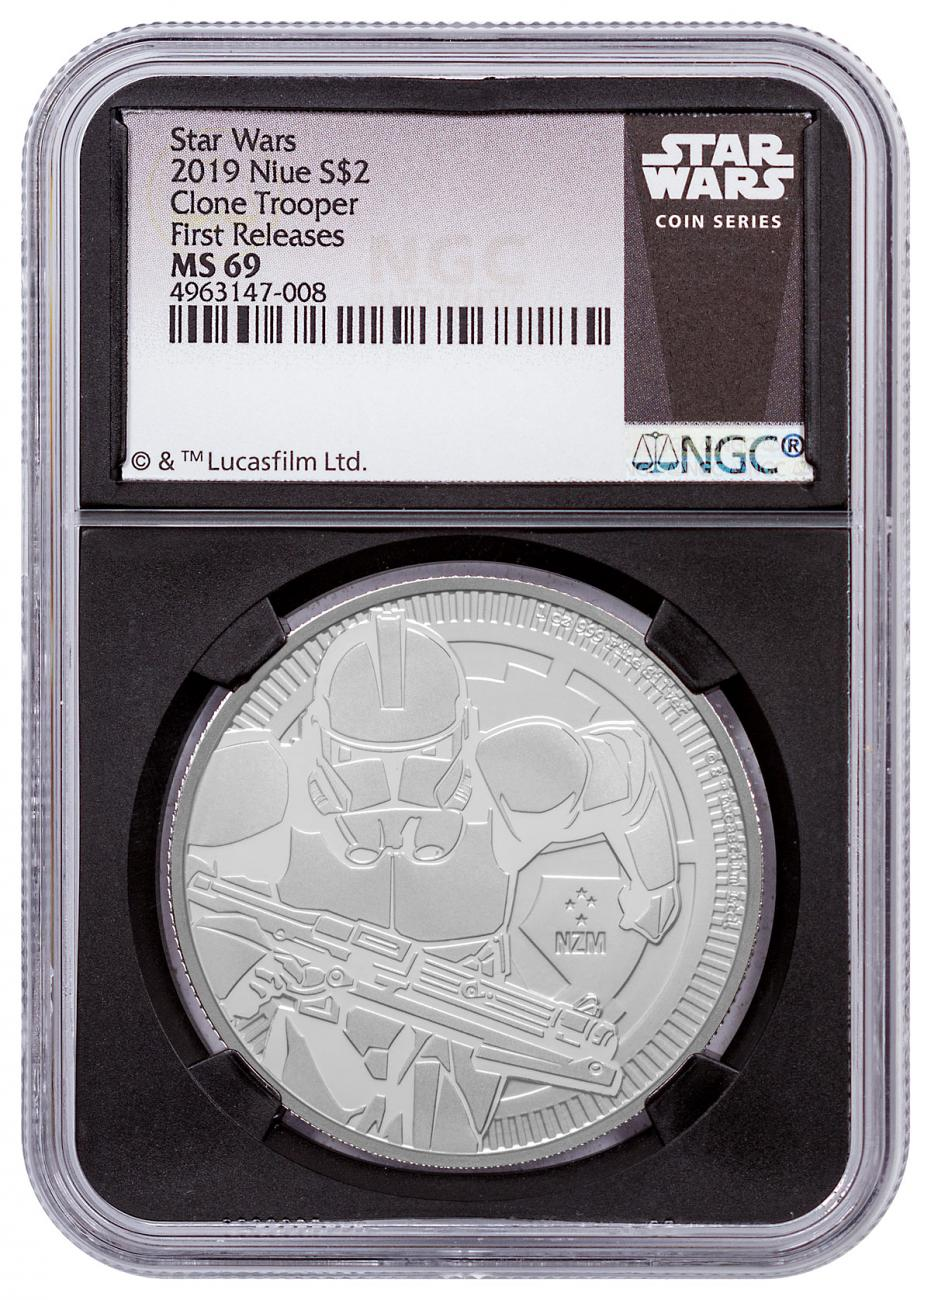 2019 Niue Star Wars Classic - Clone Trooper 1 oz Silver $2 Coin NGC MS69 FR Black Core Holder Exclusive Star Wars Label